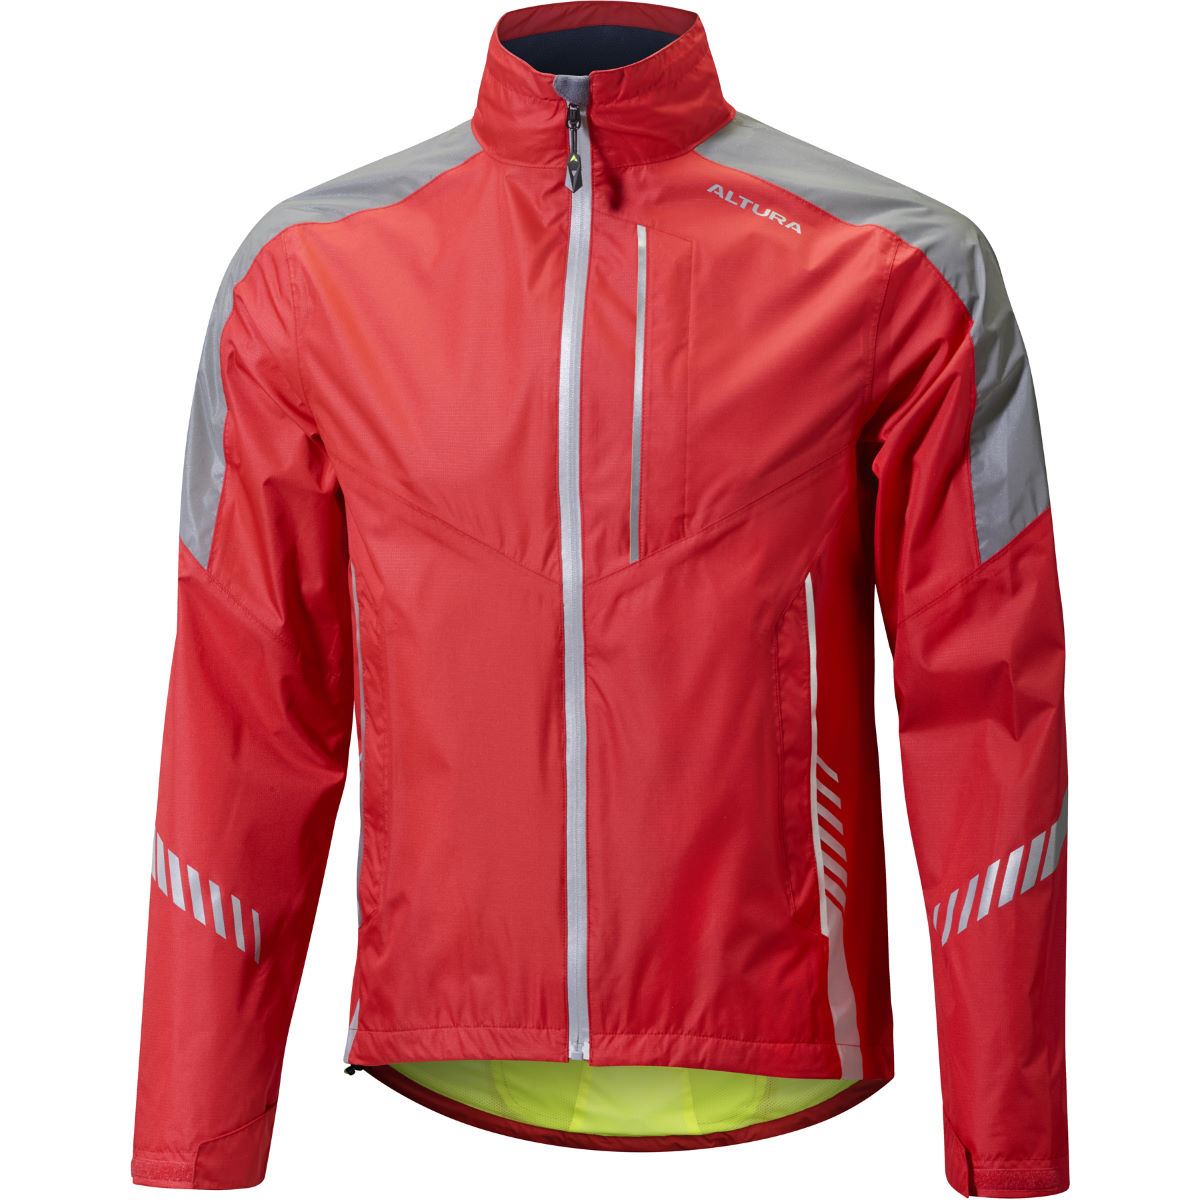 Veste Altura Nightvision 3 (imperméable) - L Team Red